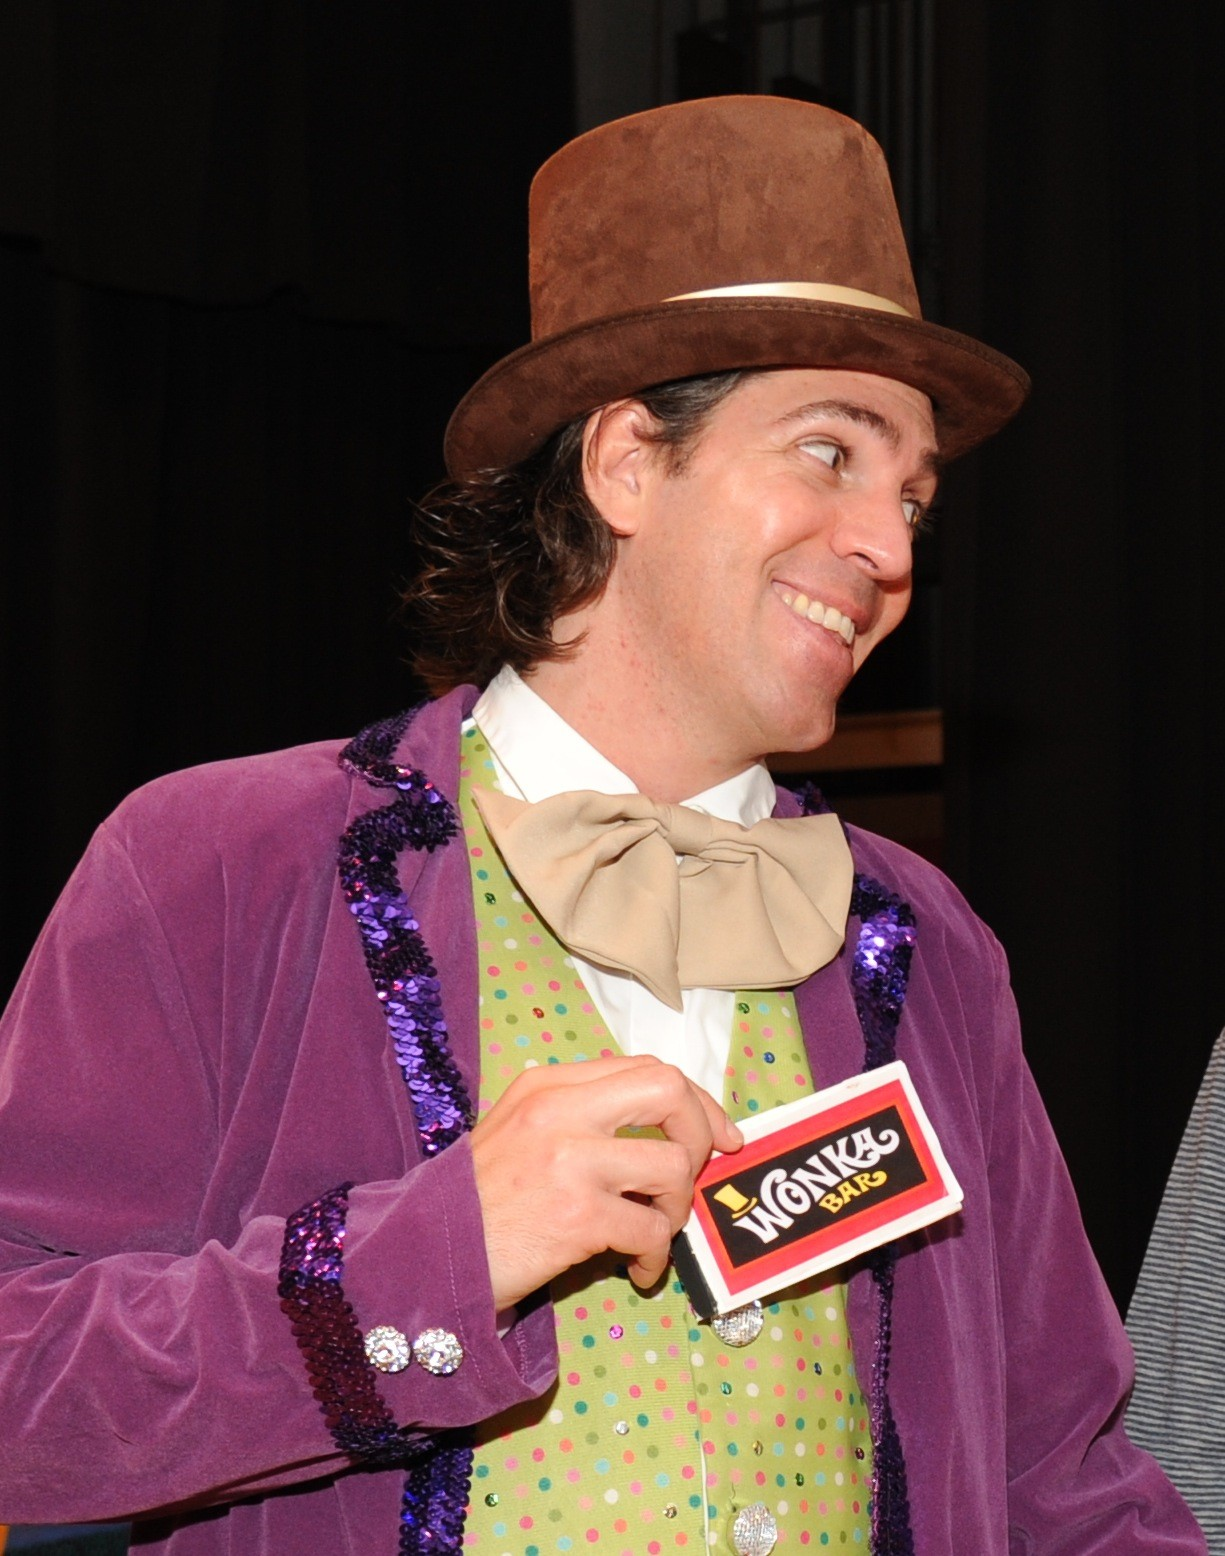 Willie wonka is played by Sal Canepa of Oceanside.